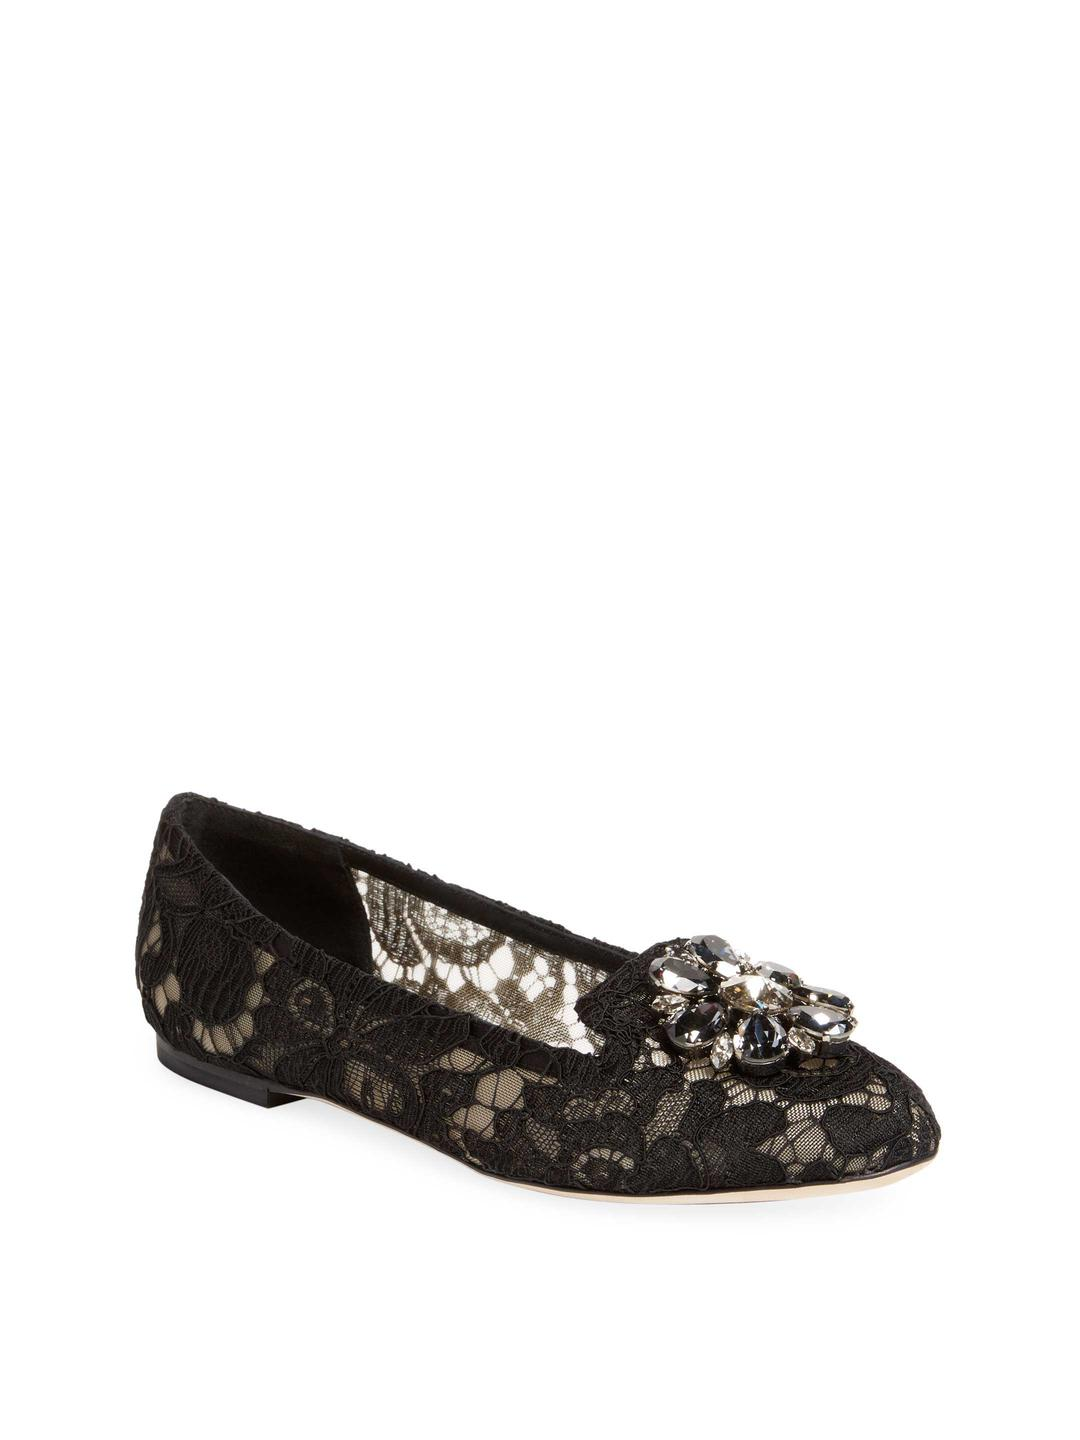 Big Sale For Sale Discount 2018 New Dolce & Gabbana Taormina Cloth Ballet Flats Looking For Huge Surprise Sale Online New Cheap Price EORXVKlqh